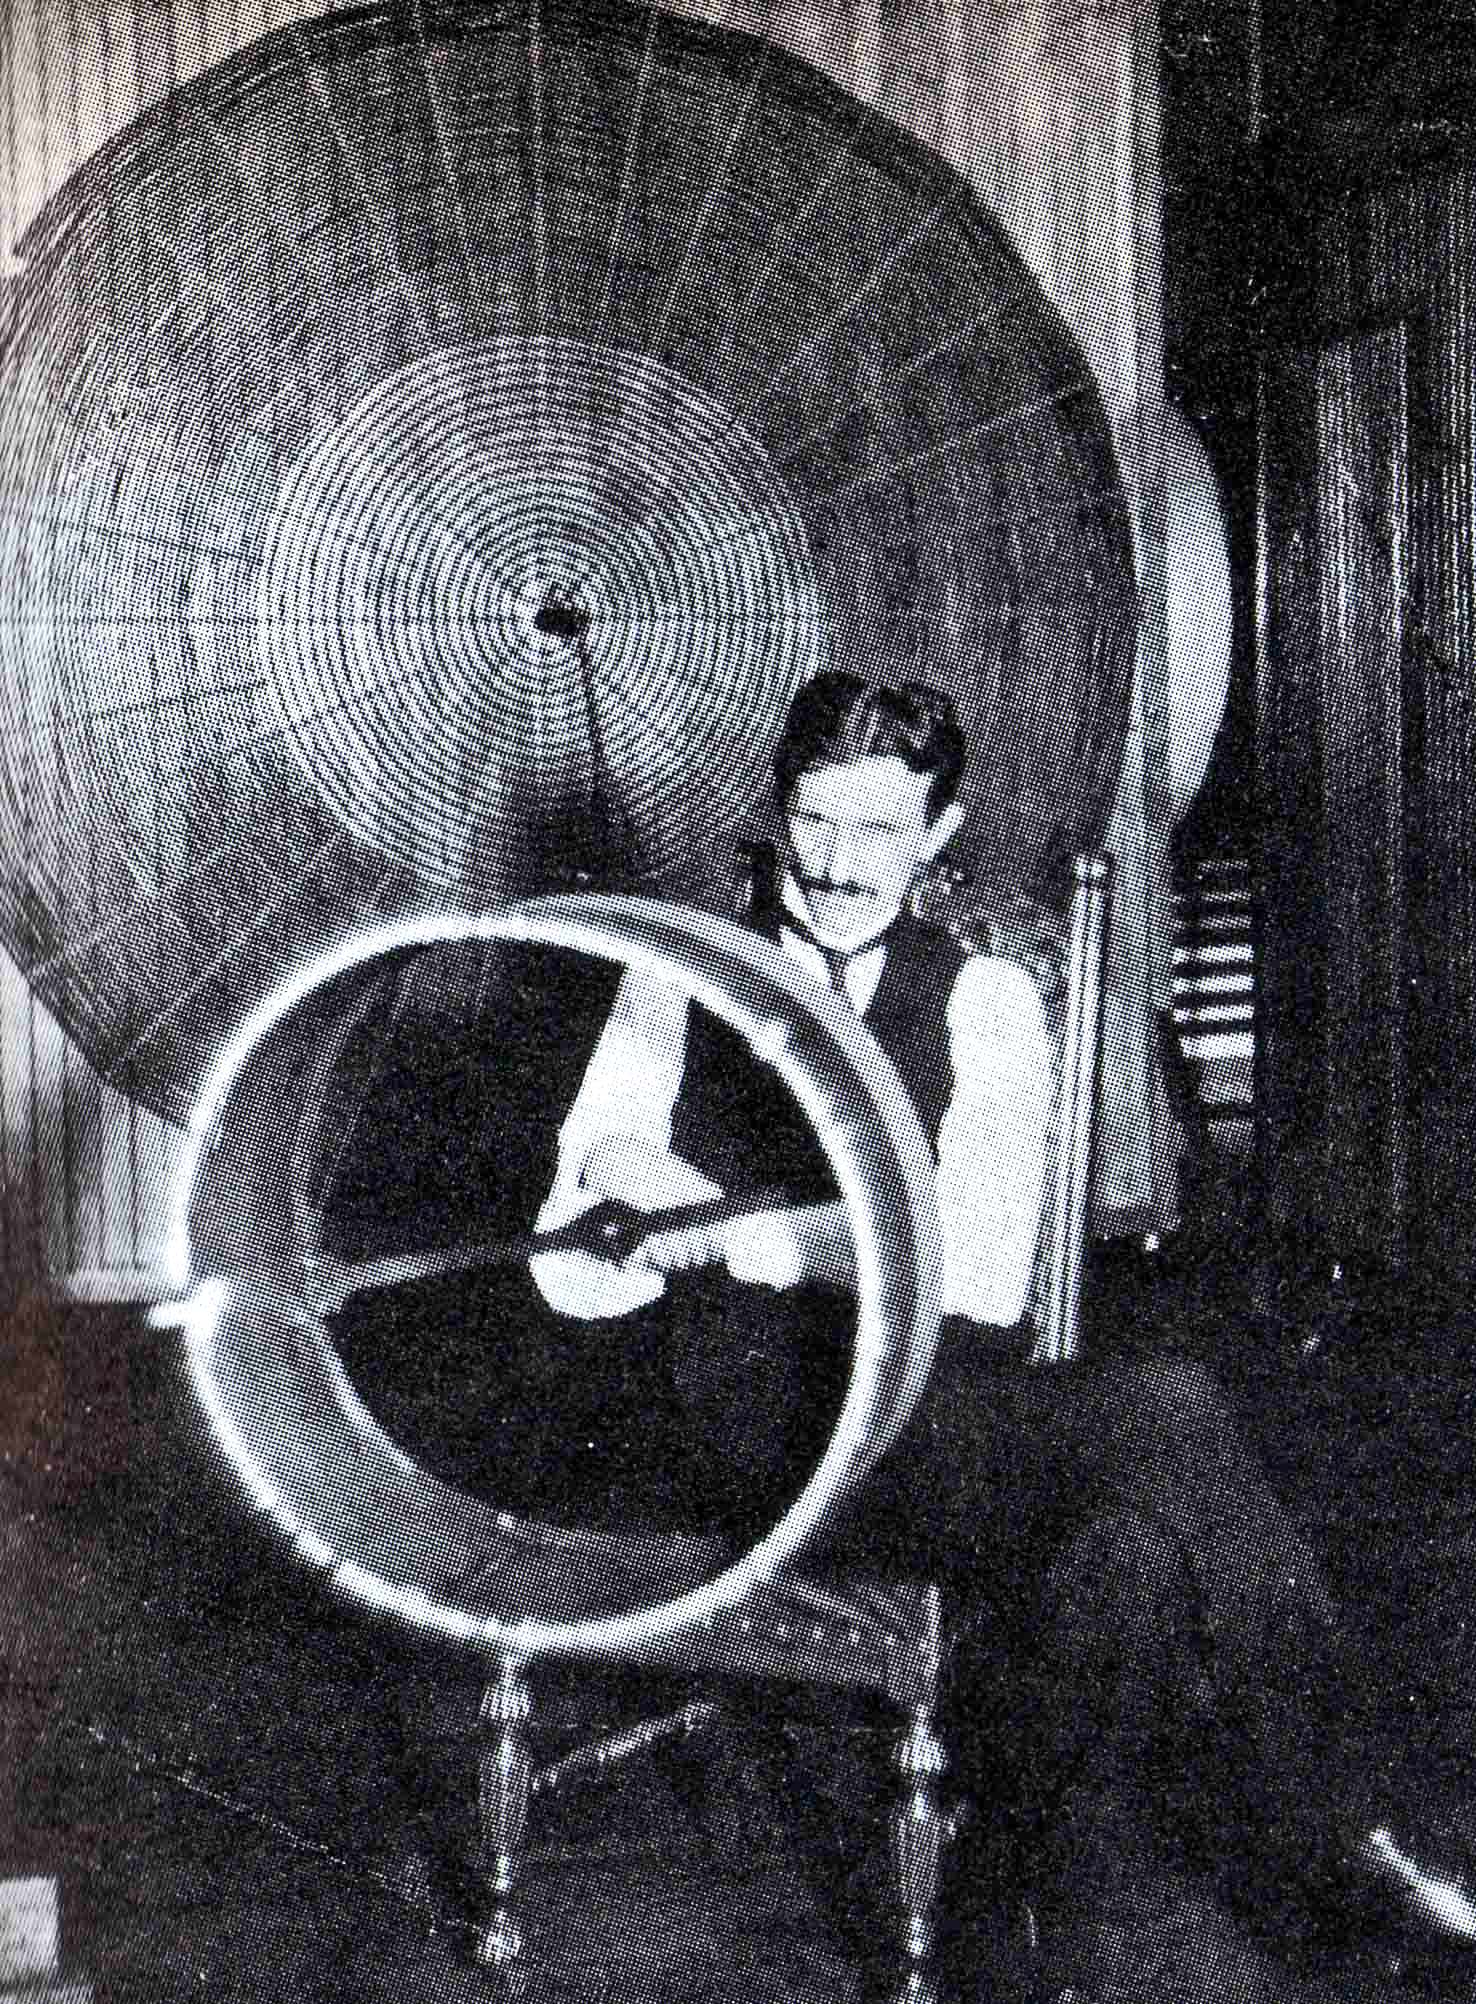 Nikola tesla pictures of infinity he invented for this purpose a tesla coil a high frequency transformer that takes the 60 cycle frequency of alternating current electricity sciox Gallery